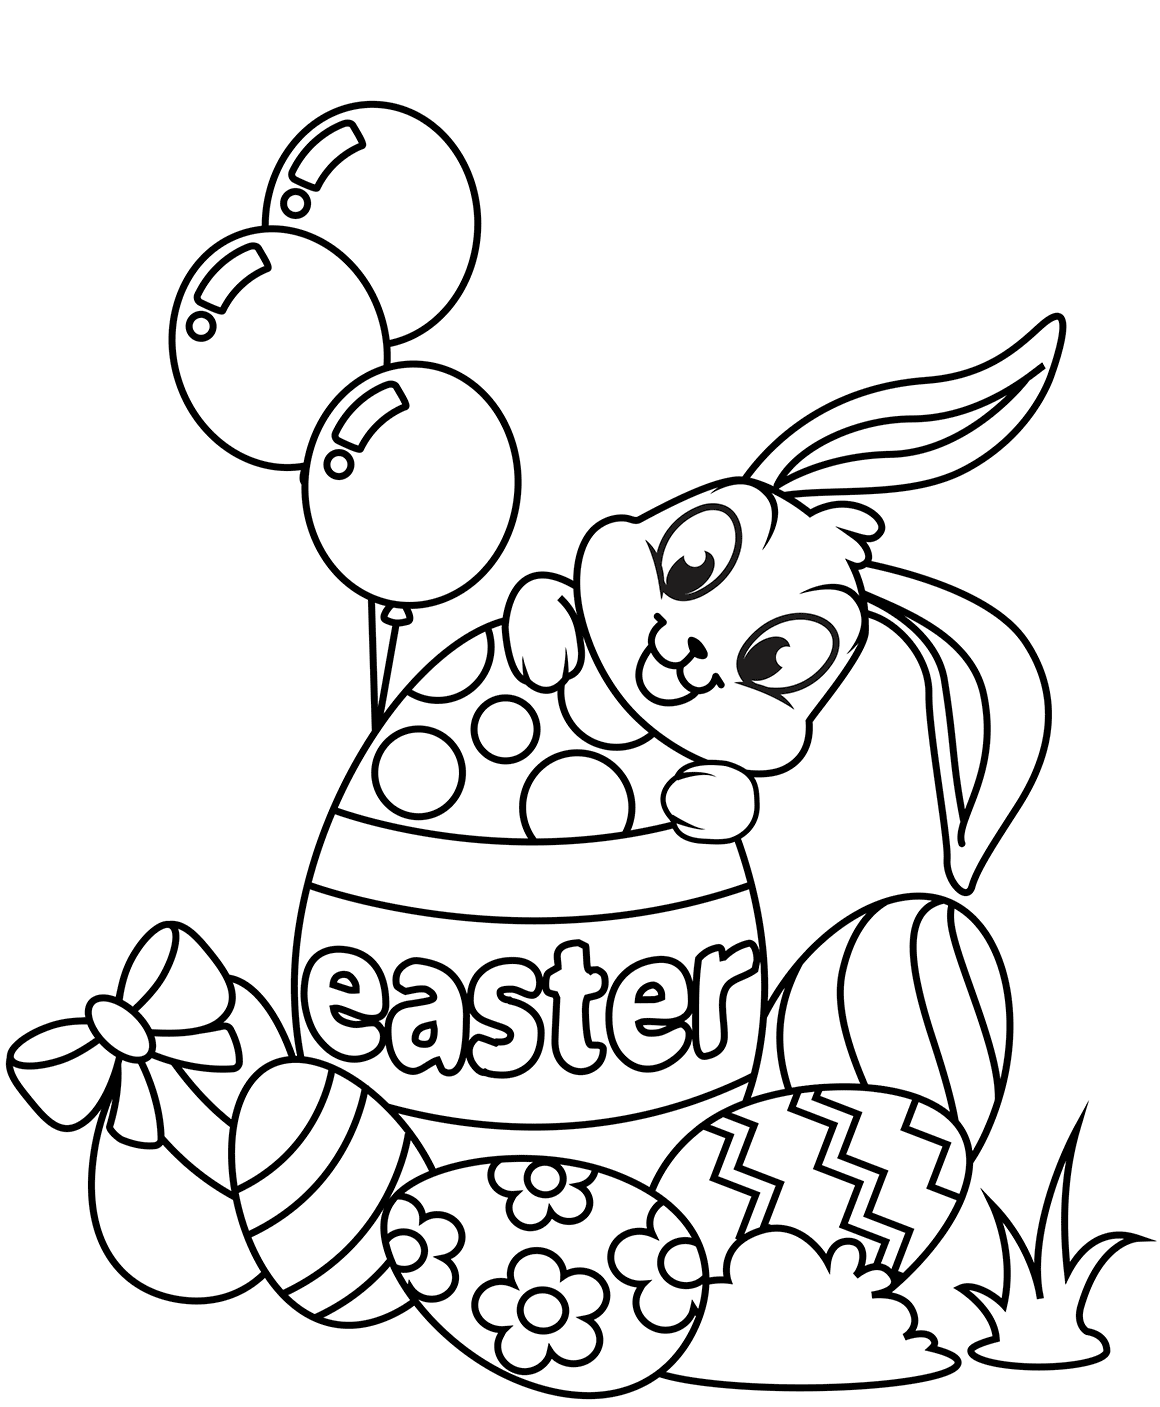 easter coloring pages printable sweet and sunny spring easter coloring pages printable pages coloring easter